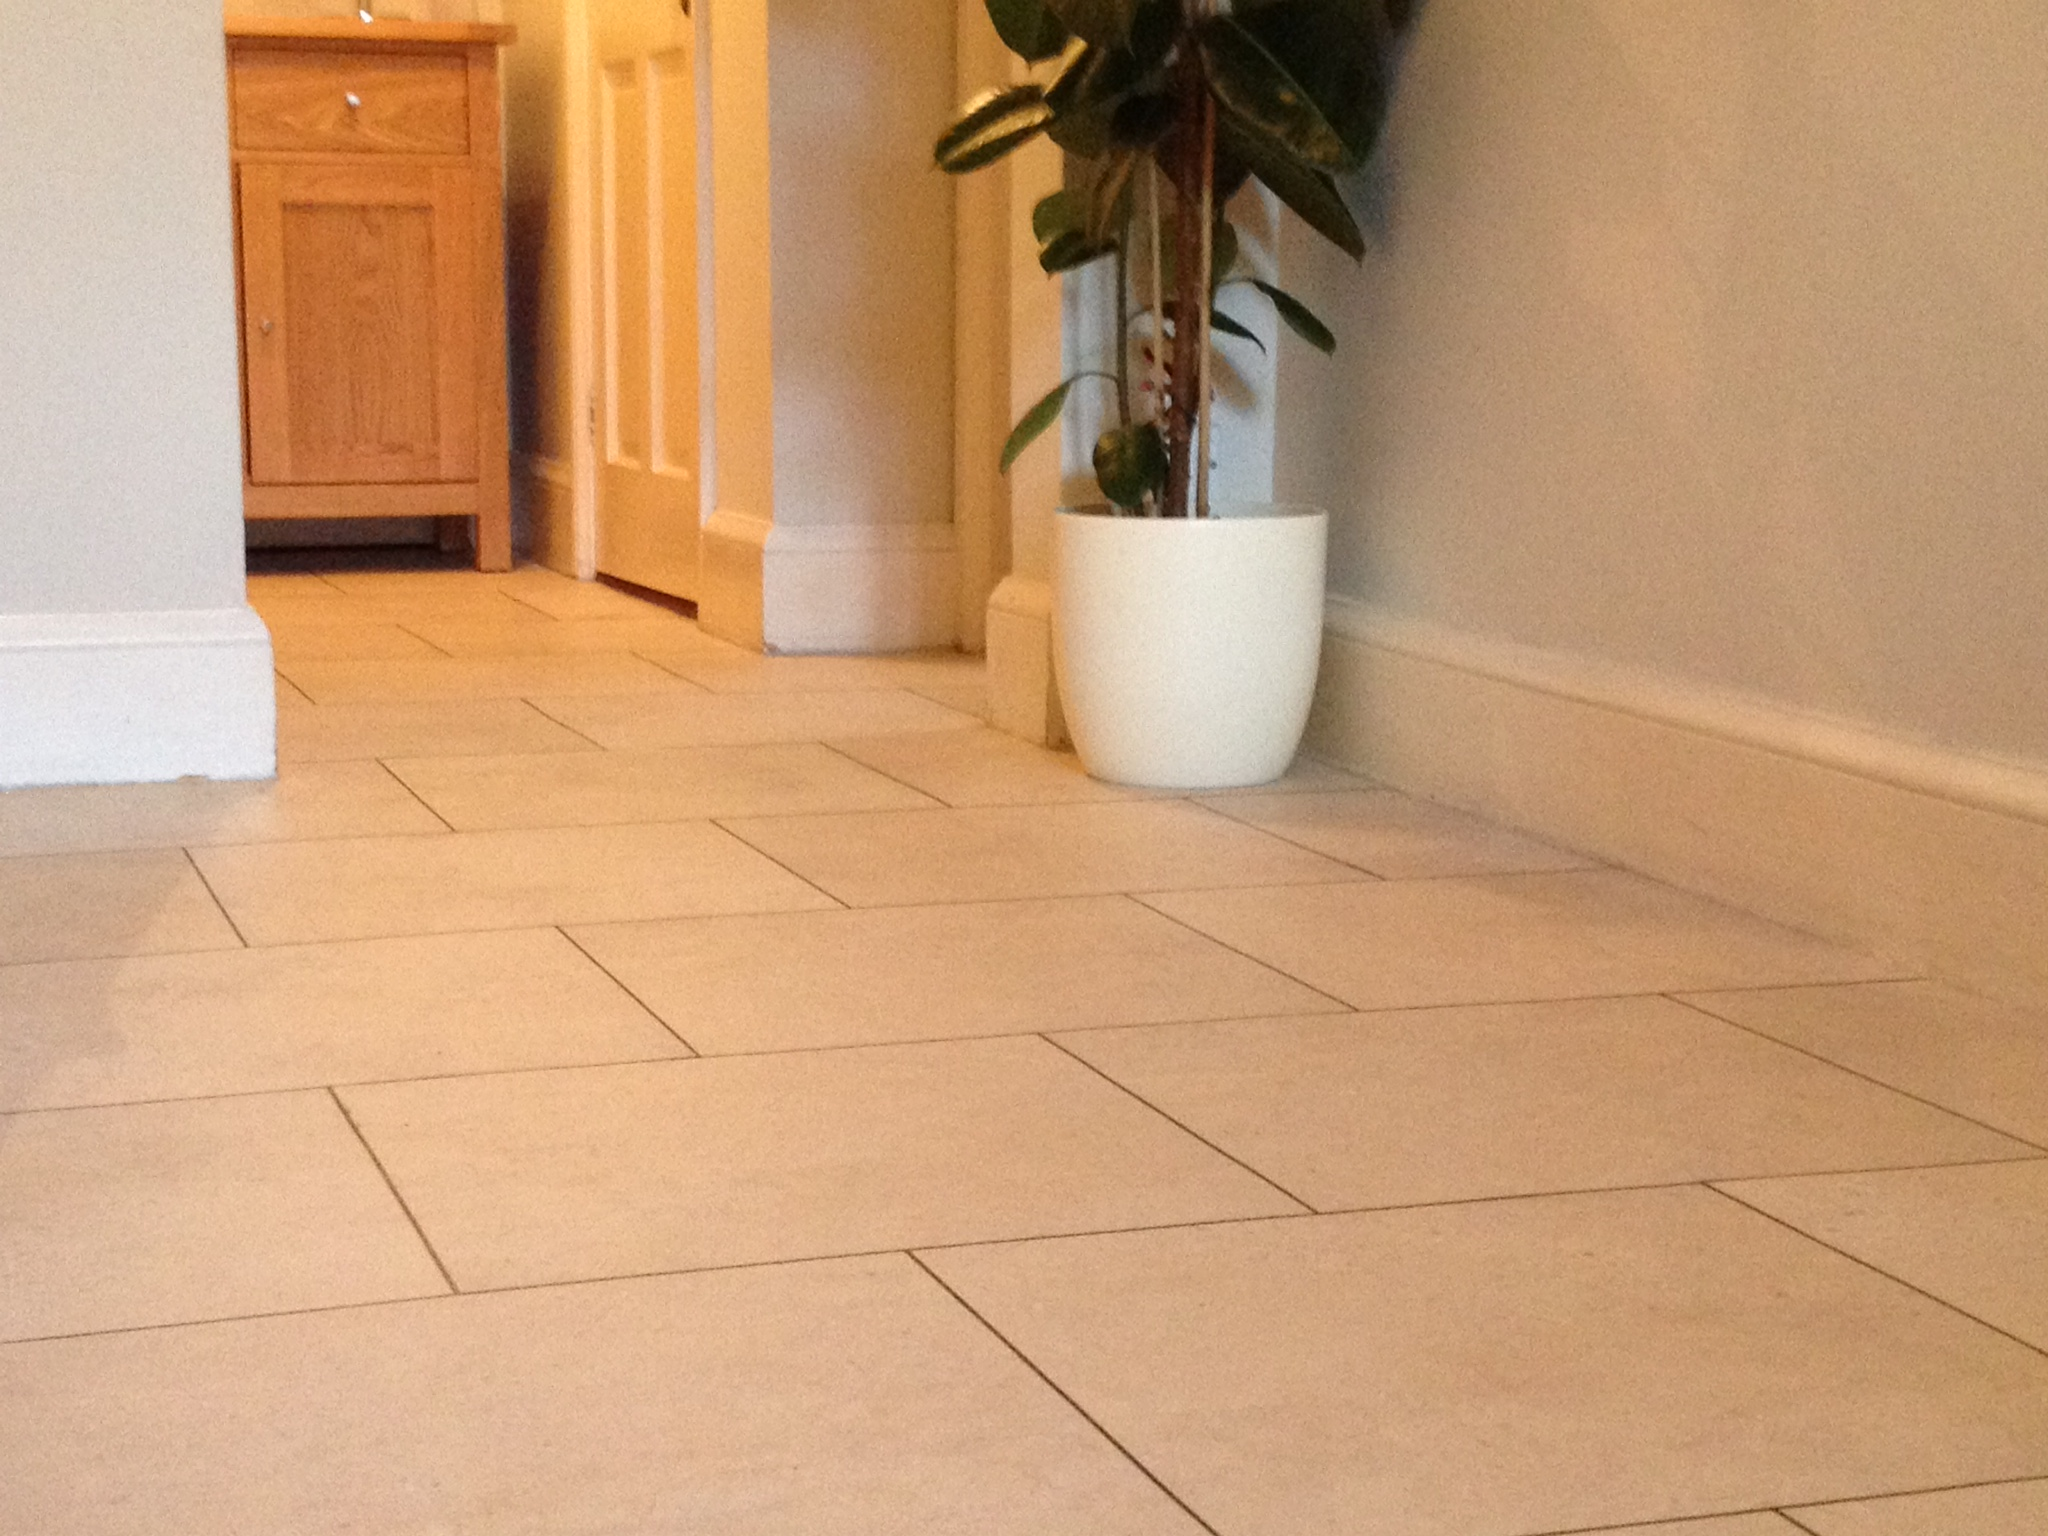 Colonia flooring - Natural Limestone & Graphite feature strips  (1).jpeg